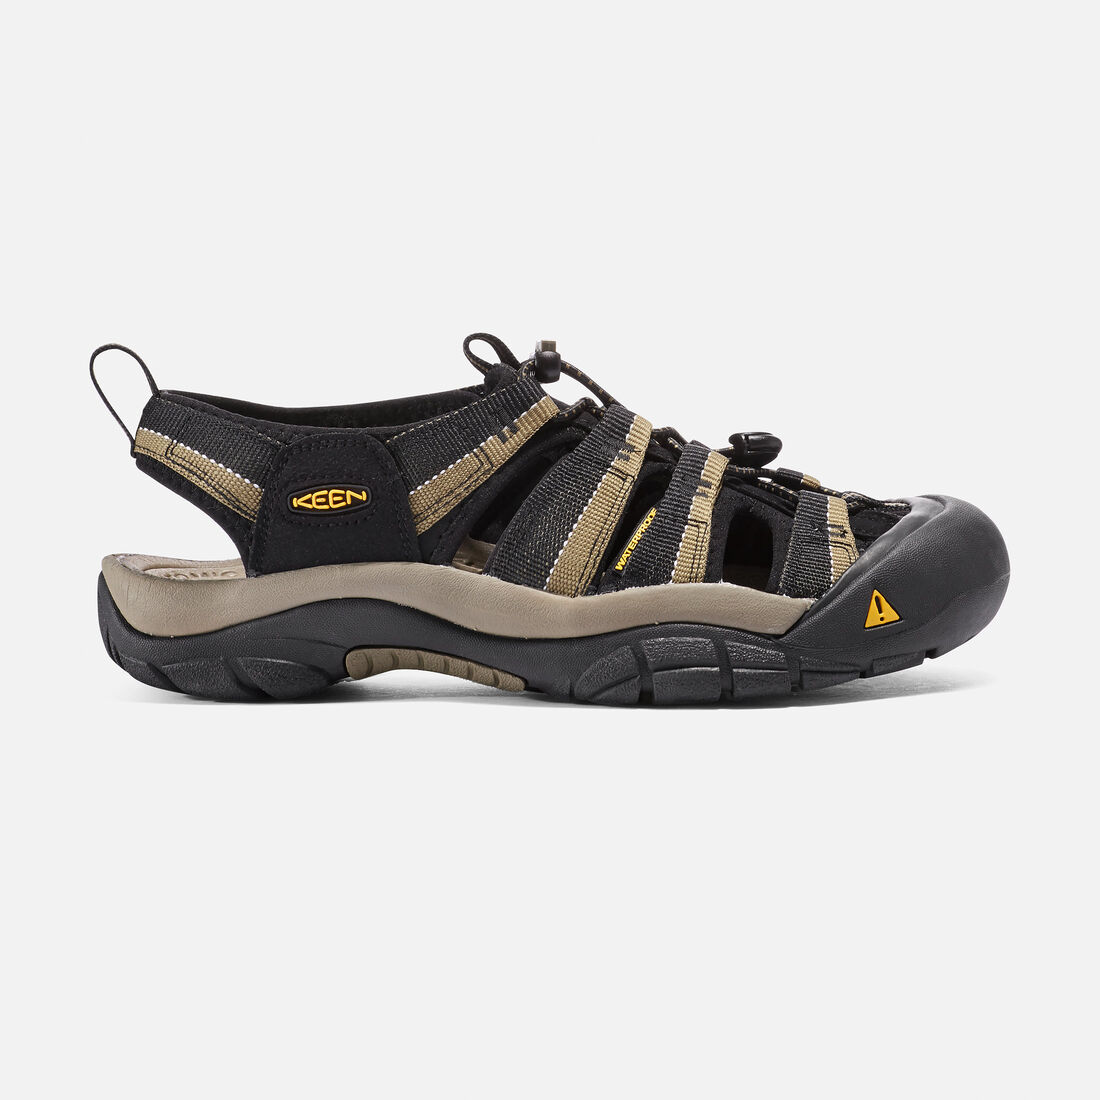 MEN'S NEWPORT H2 SANDALS in Black/Stone Gray - large view.